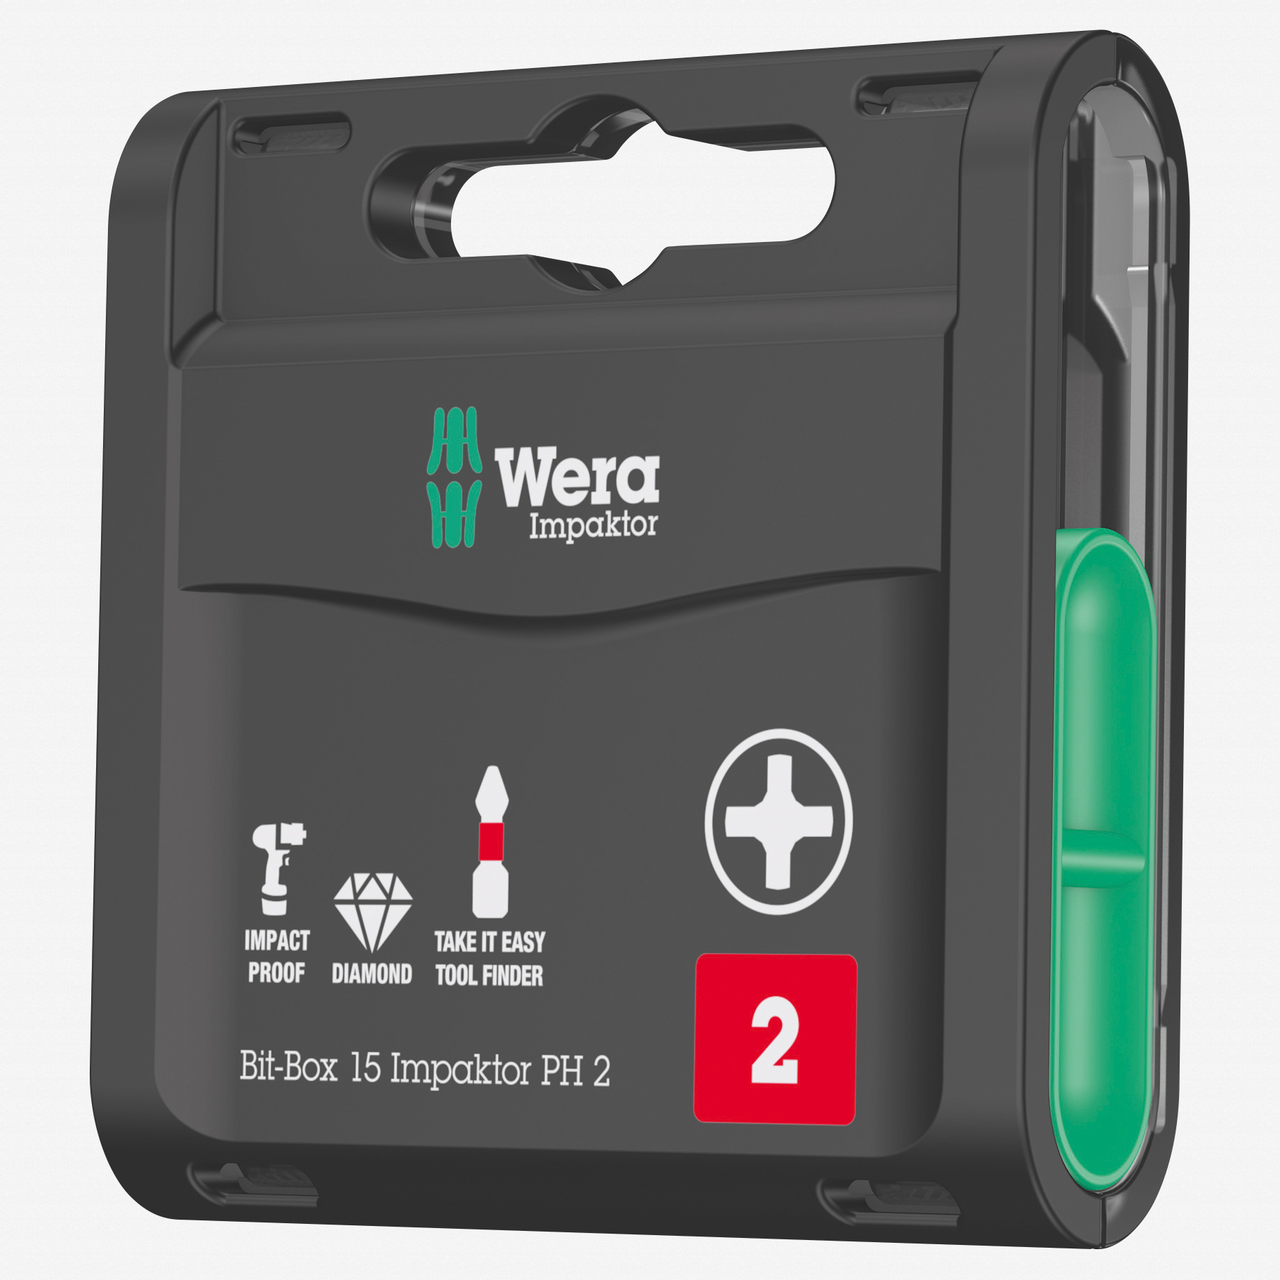 Wera 057752 Bit-Box 15 Impaktor PH Phillips #2 - KC Tool